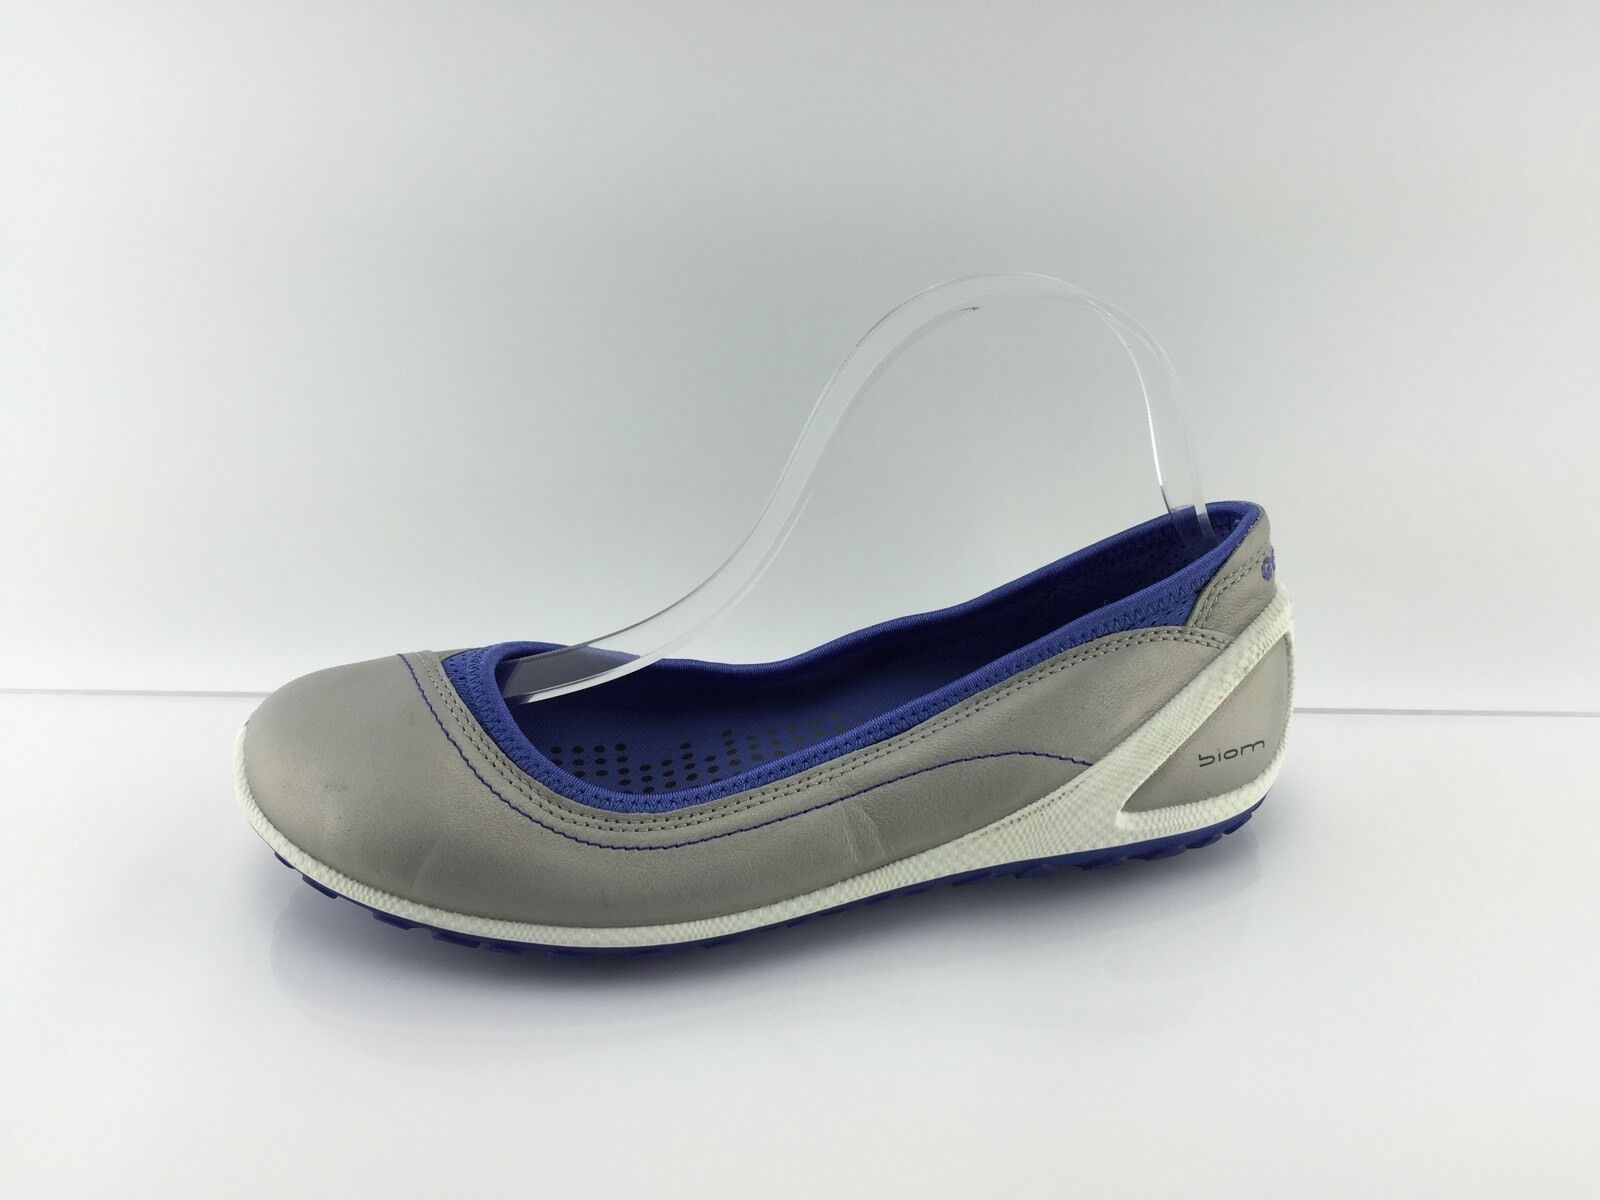 Ecco Biom Wouomo Pewter Multi Coloree Flats 38